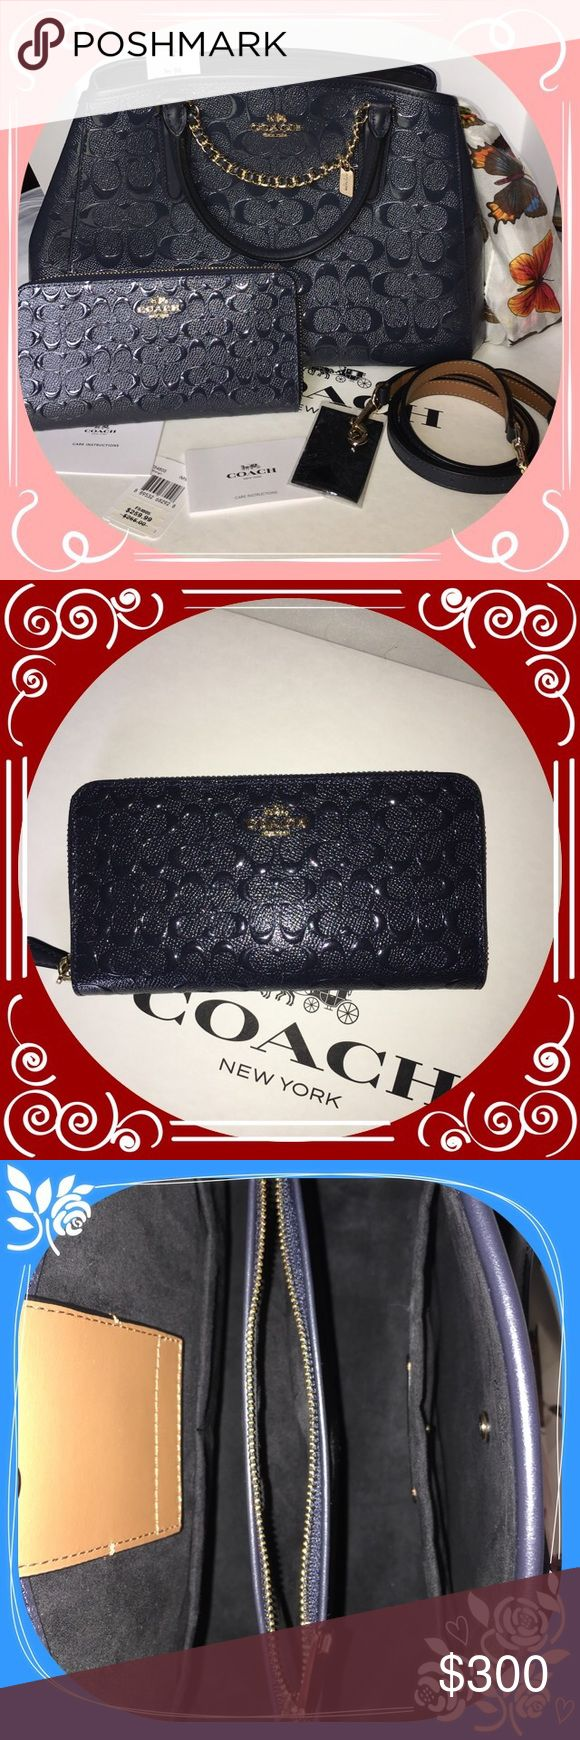 💖COACH MARGOT PURSE AND WALLET New with tags & care cards. Coach Bags Satchels